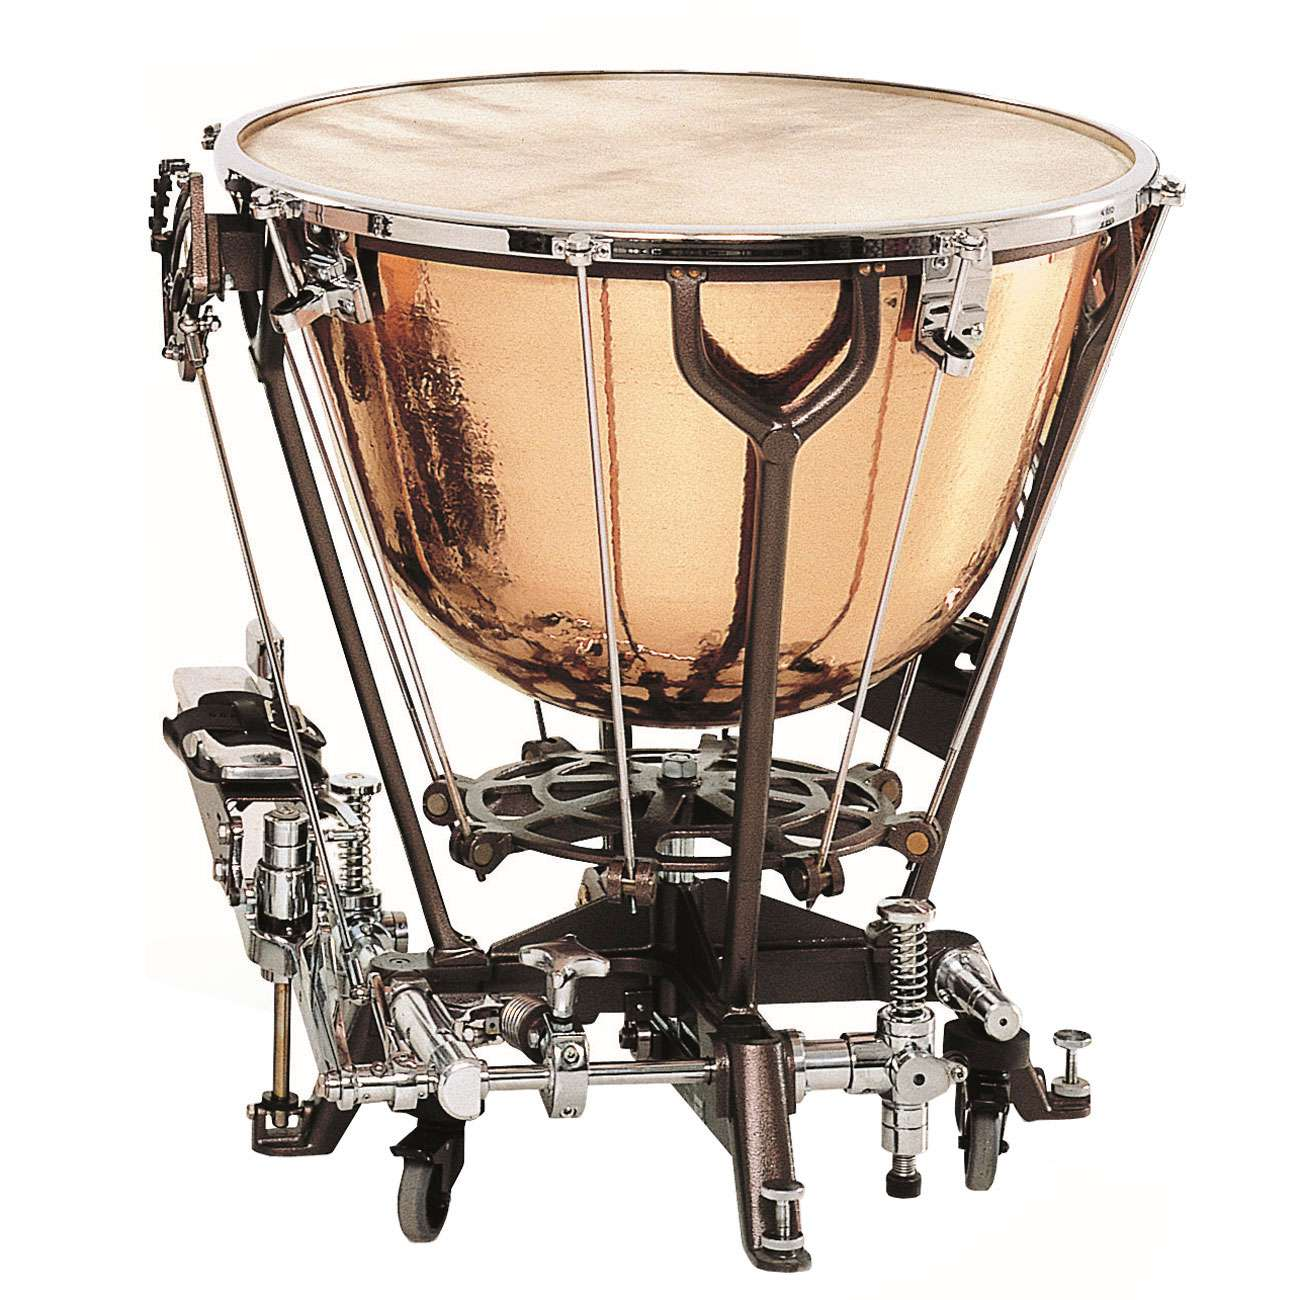 "Adams 28"" Philharmonic Light Timpani with Dresden Pedal and Calfskin Head"